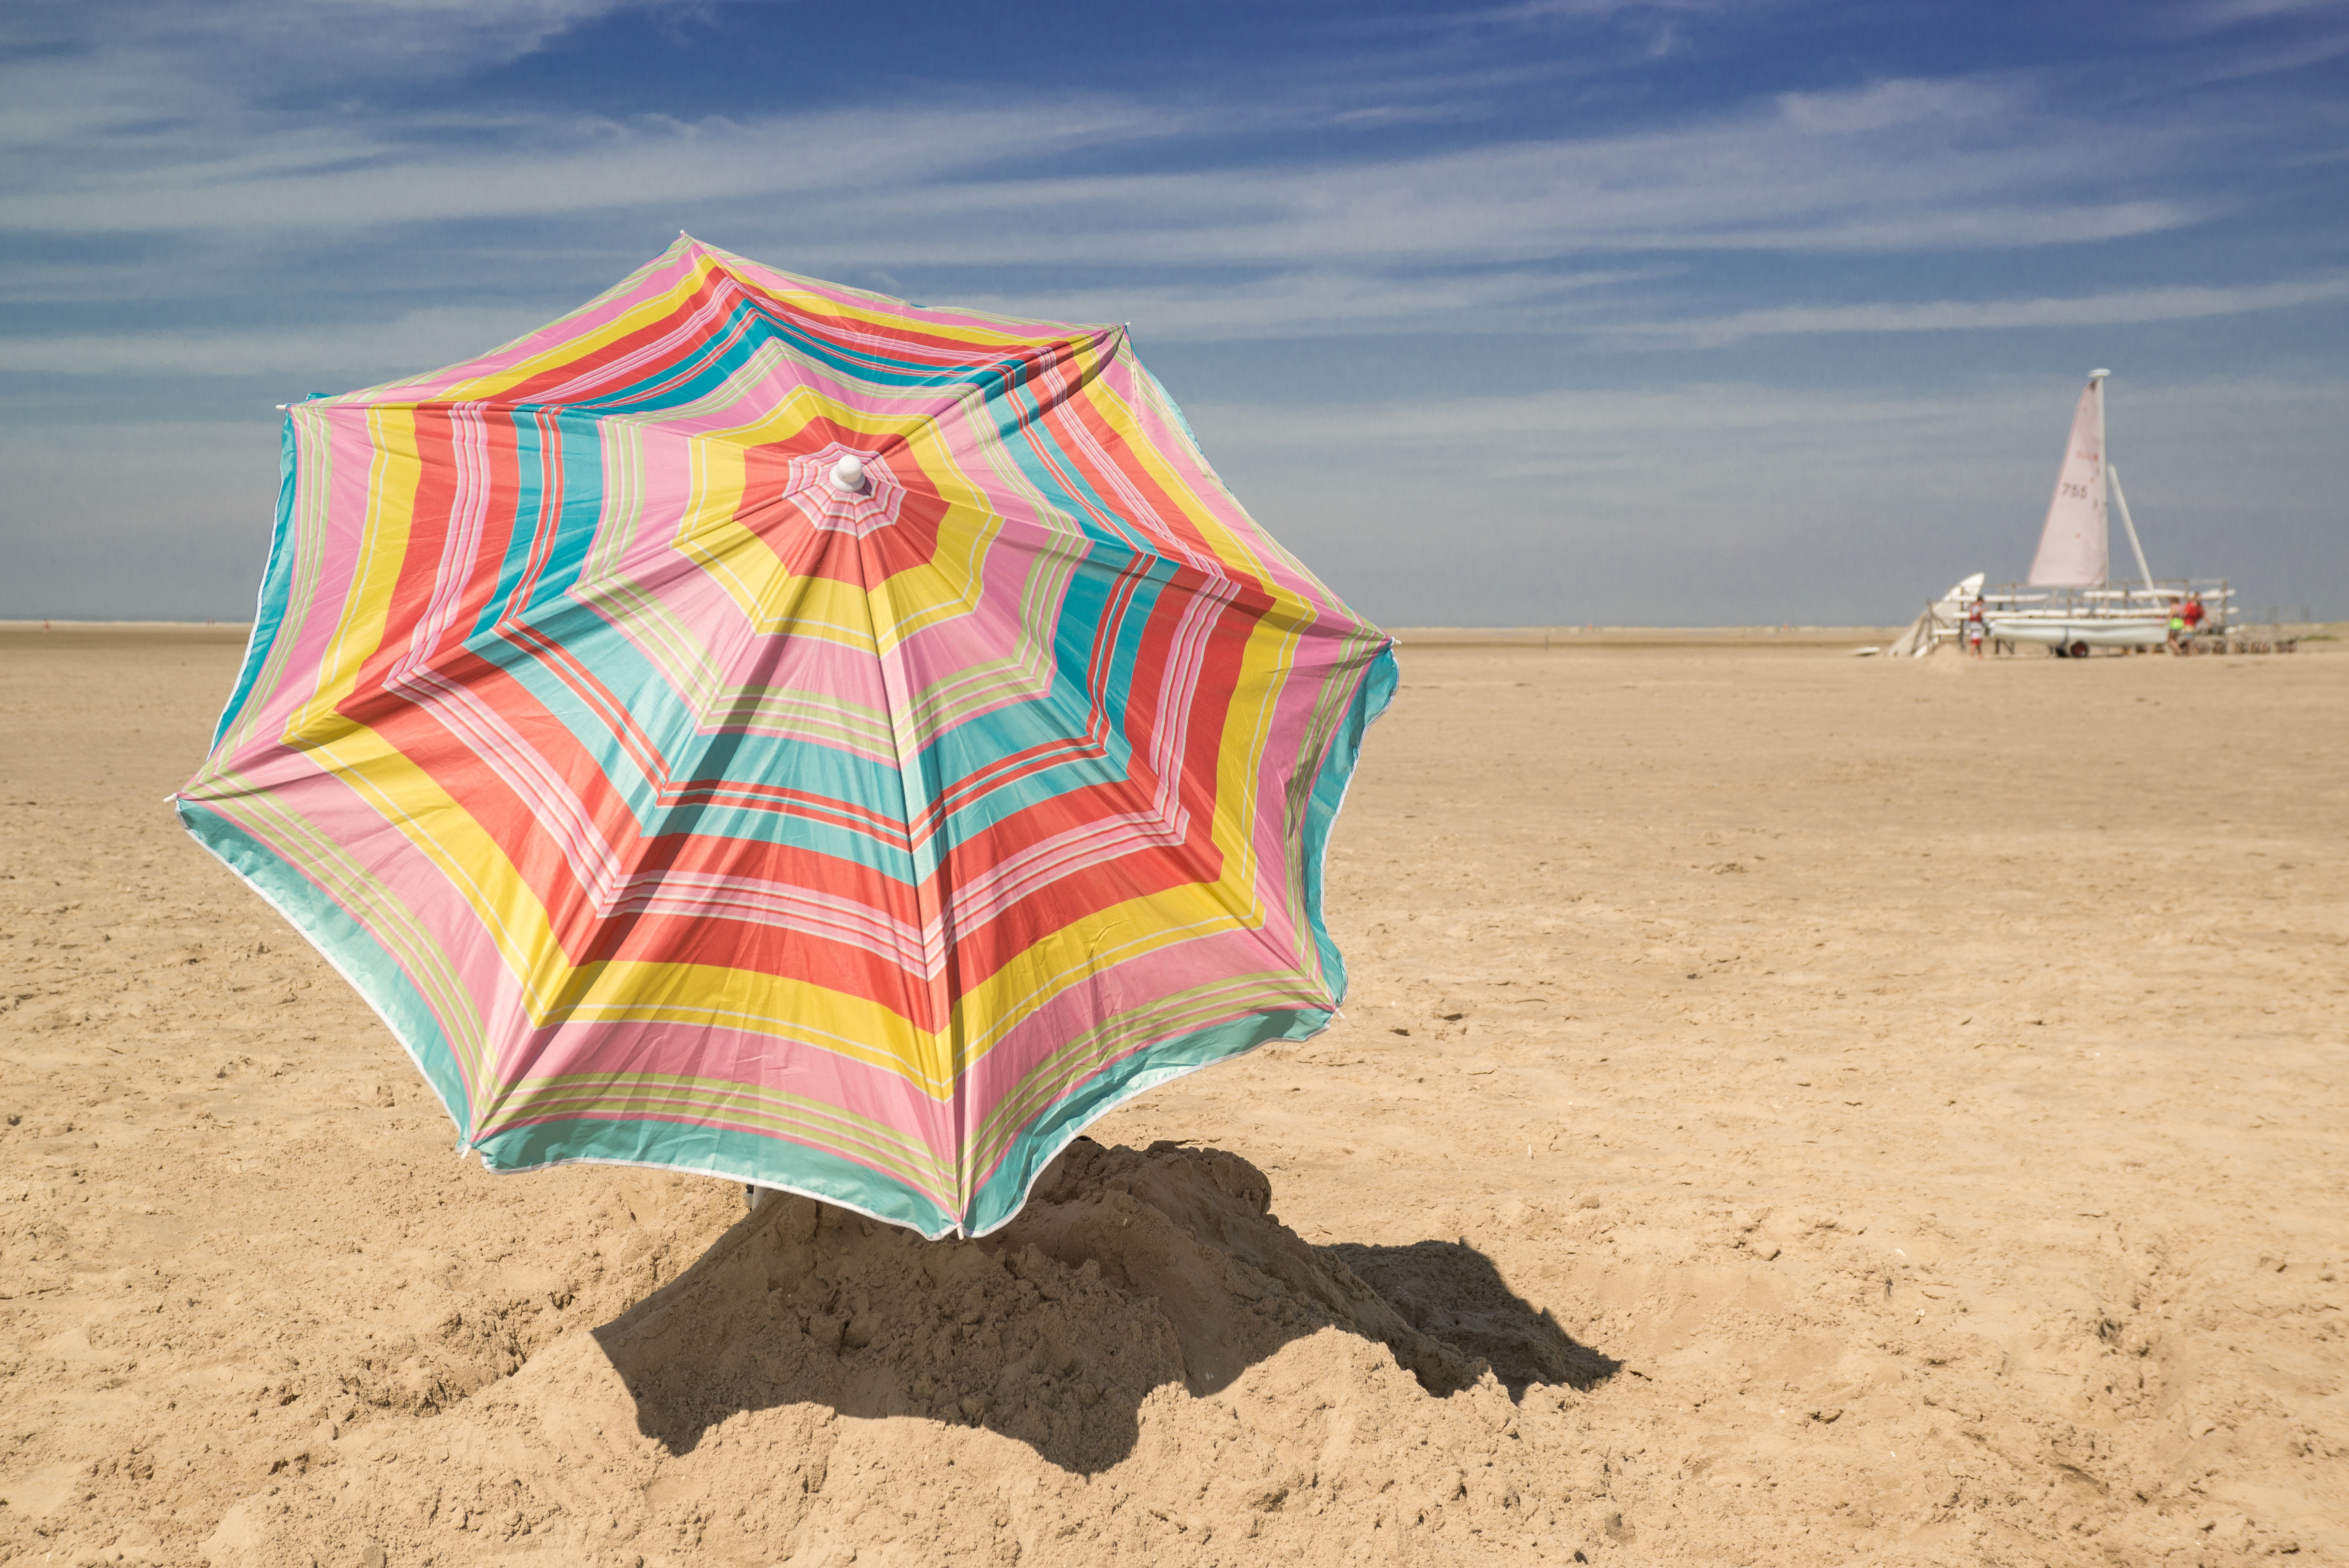 Patio umbrella on sand photo